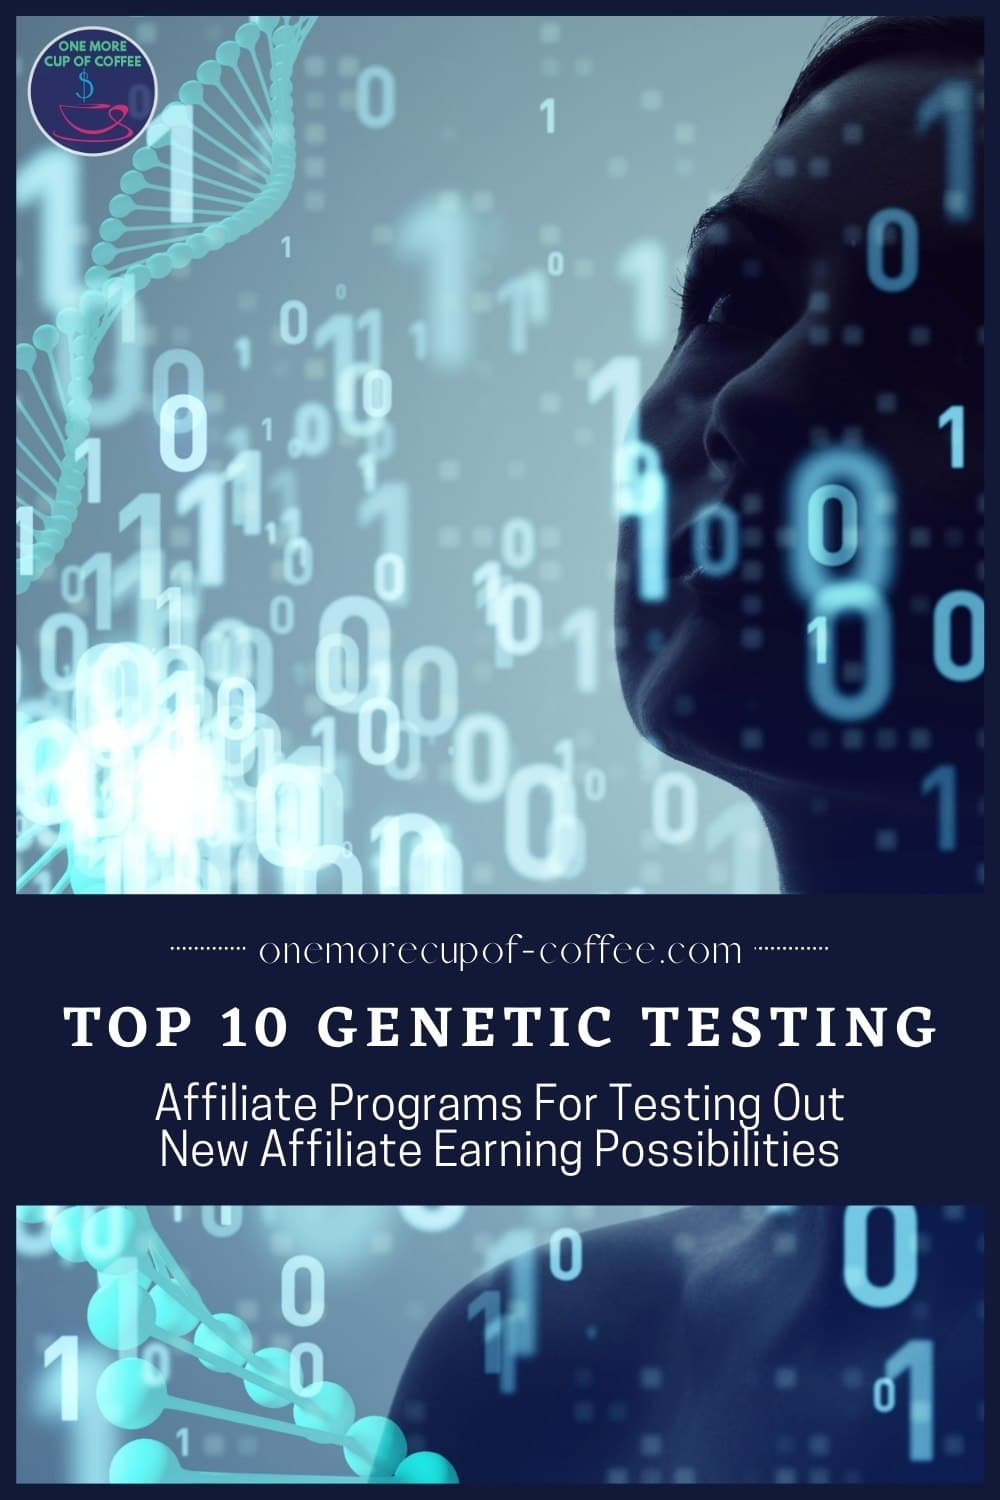 """silhouette of a woman with floating dna sequence images; with text overlay in dark blue banner """"Top 10 Genetic Testing Affiliate Programs For Testing Out New Affiliate Earning Possibilities"""""""